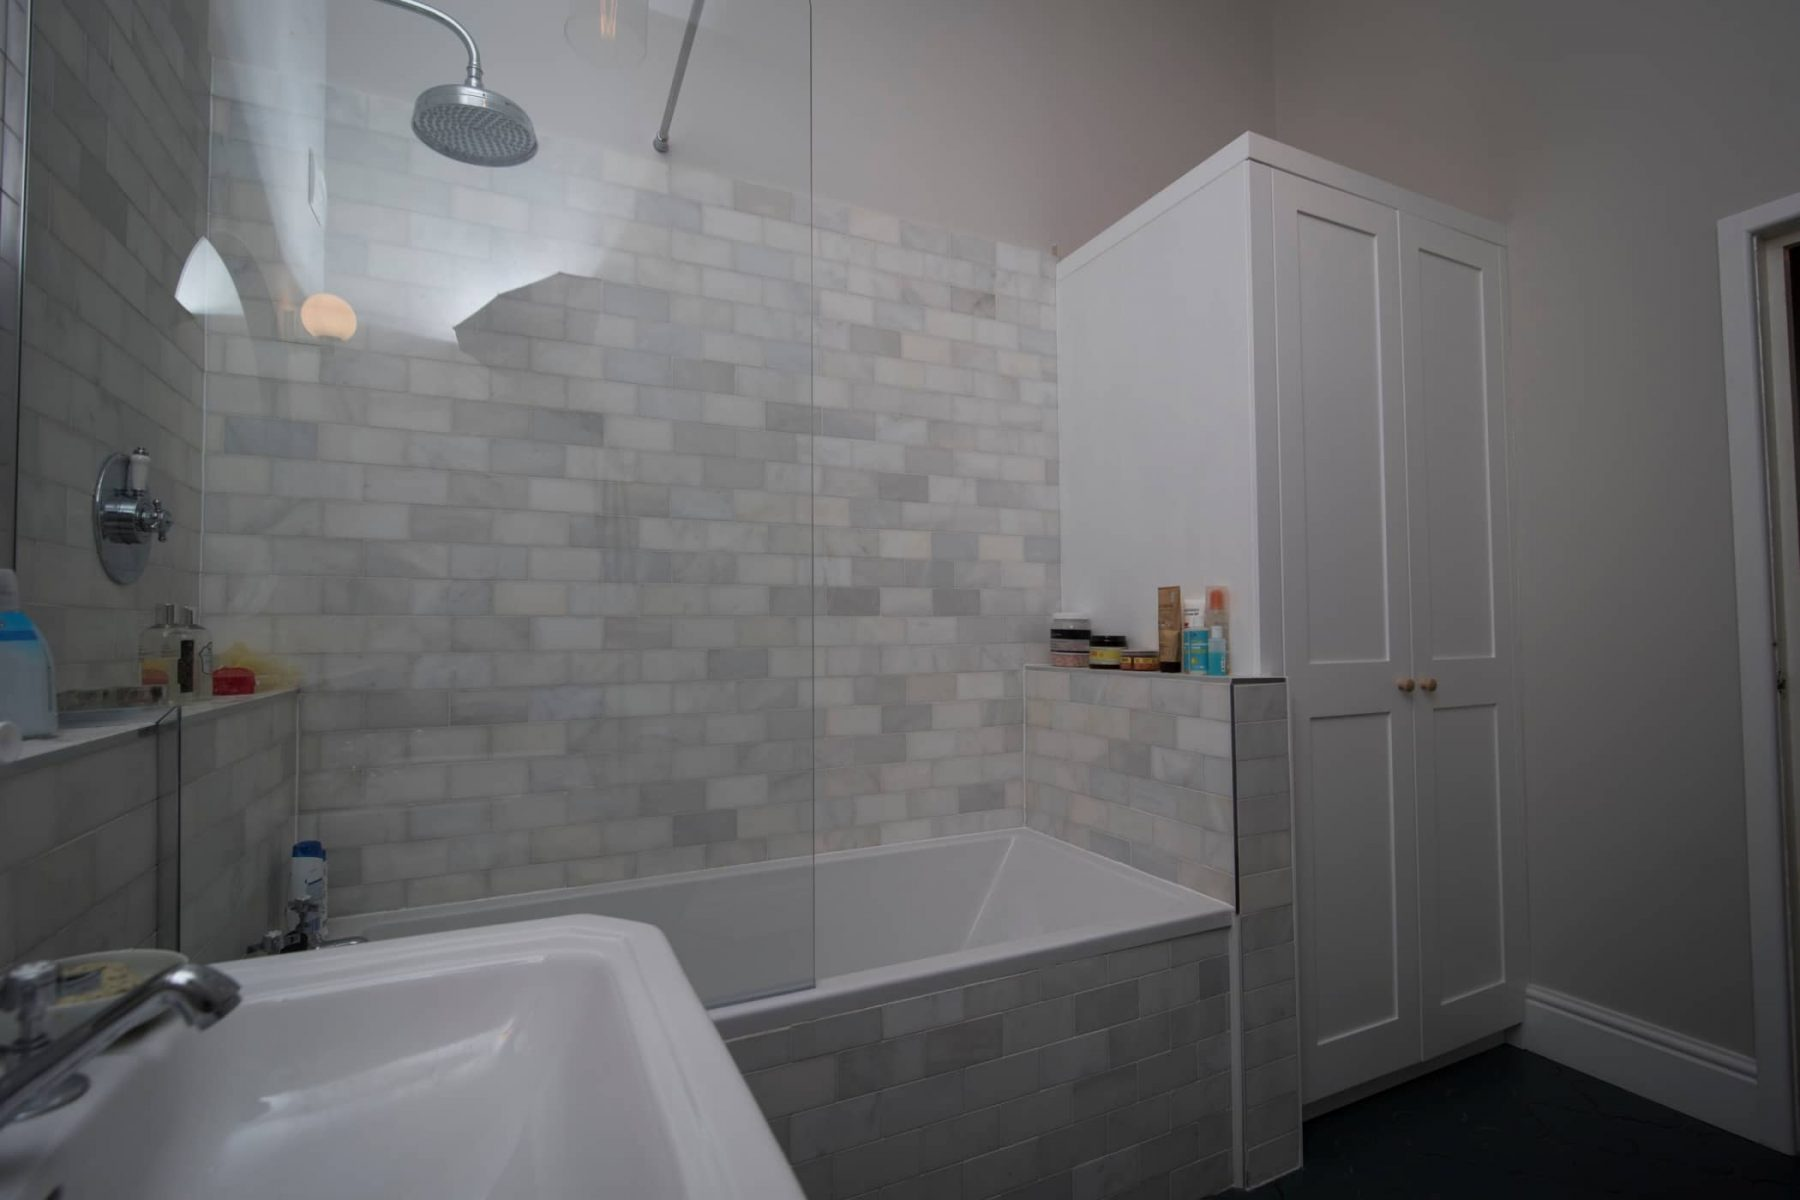 White fitted bathroom cupboards with tiled walls